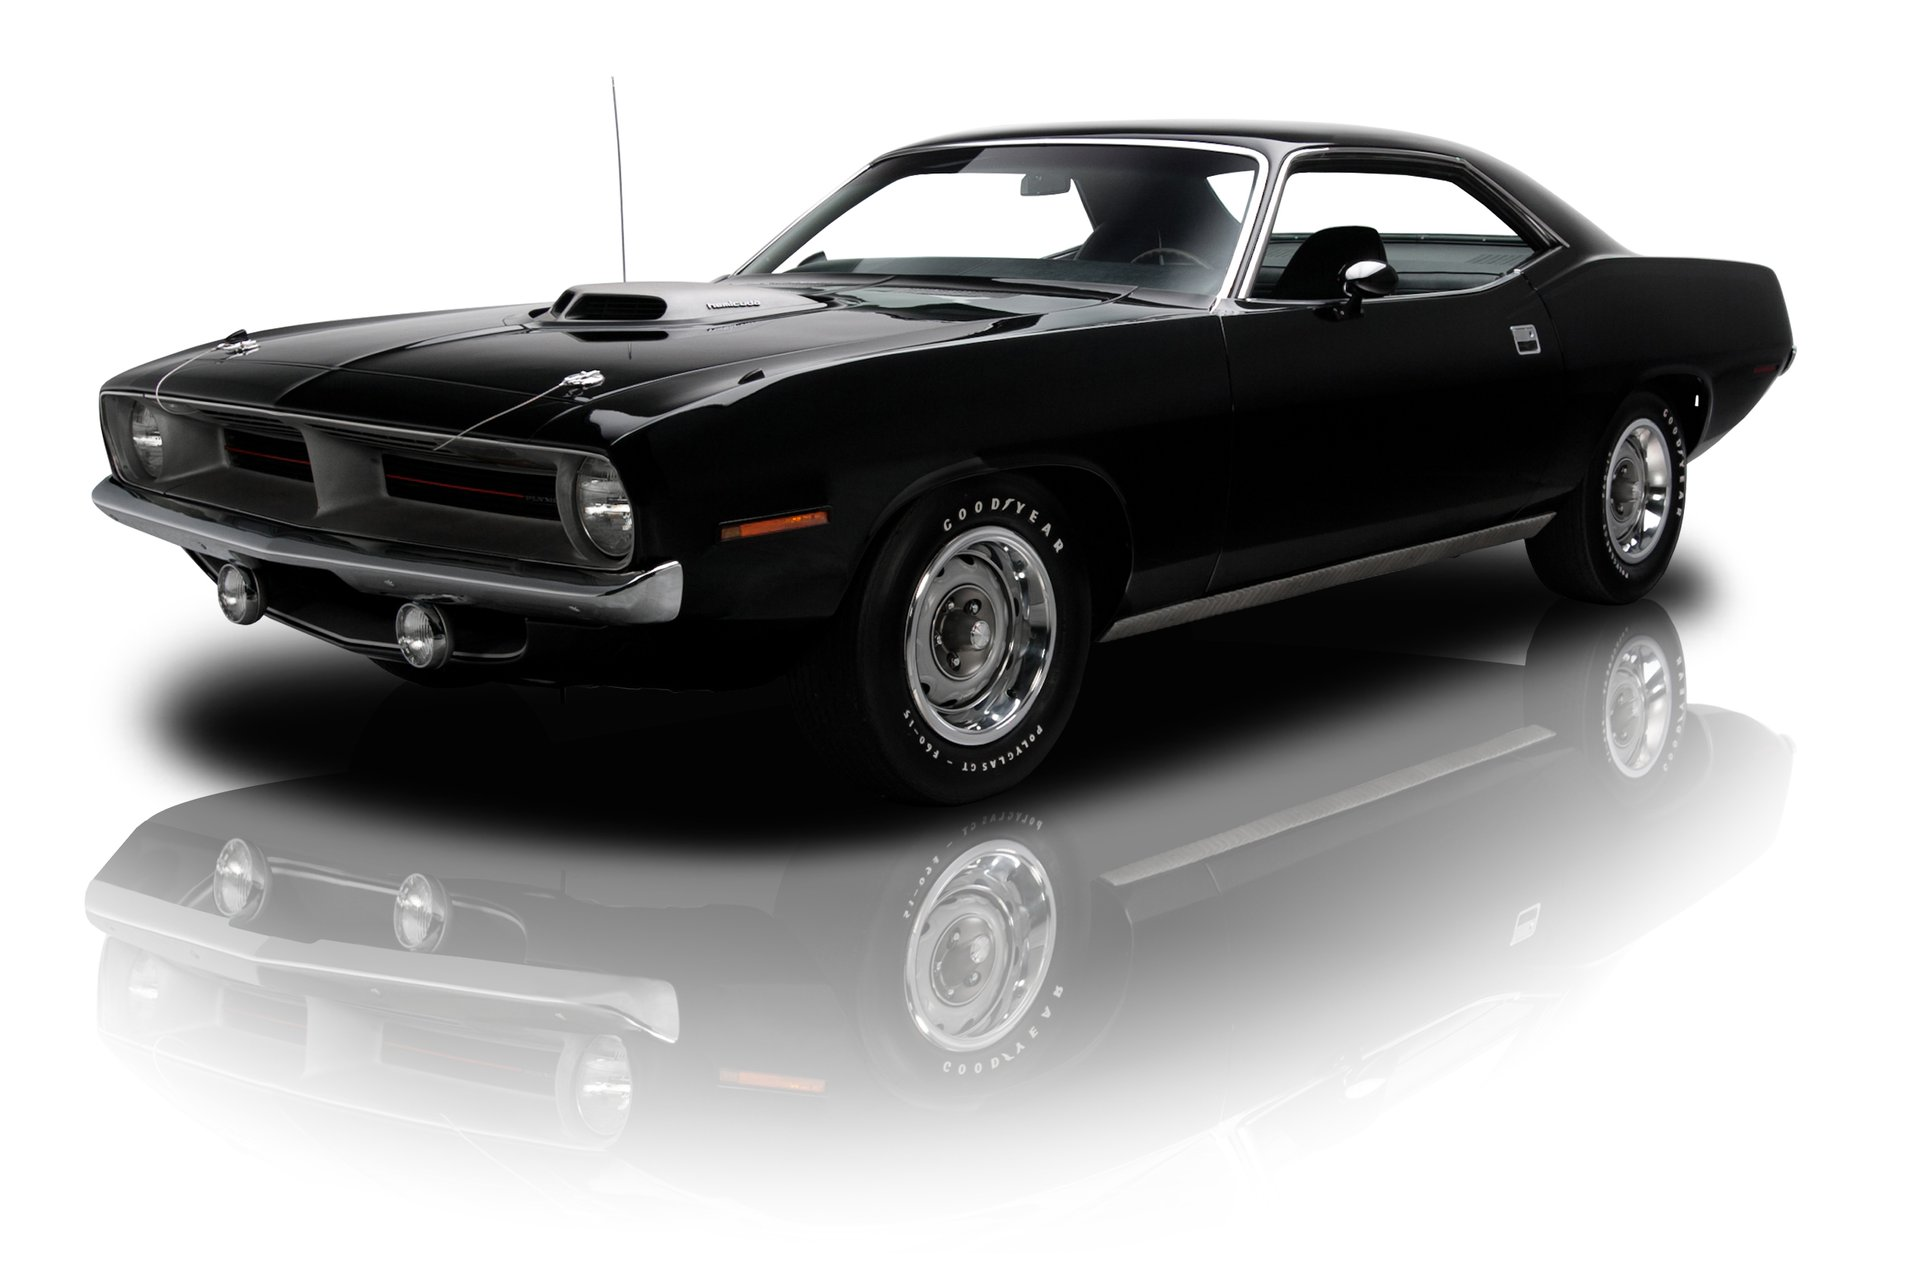 134267 1970 Plymouth Cuda Rk Motors Classic Cars For Sale